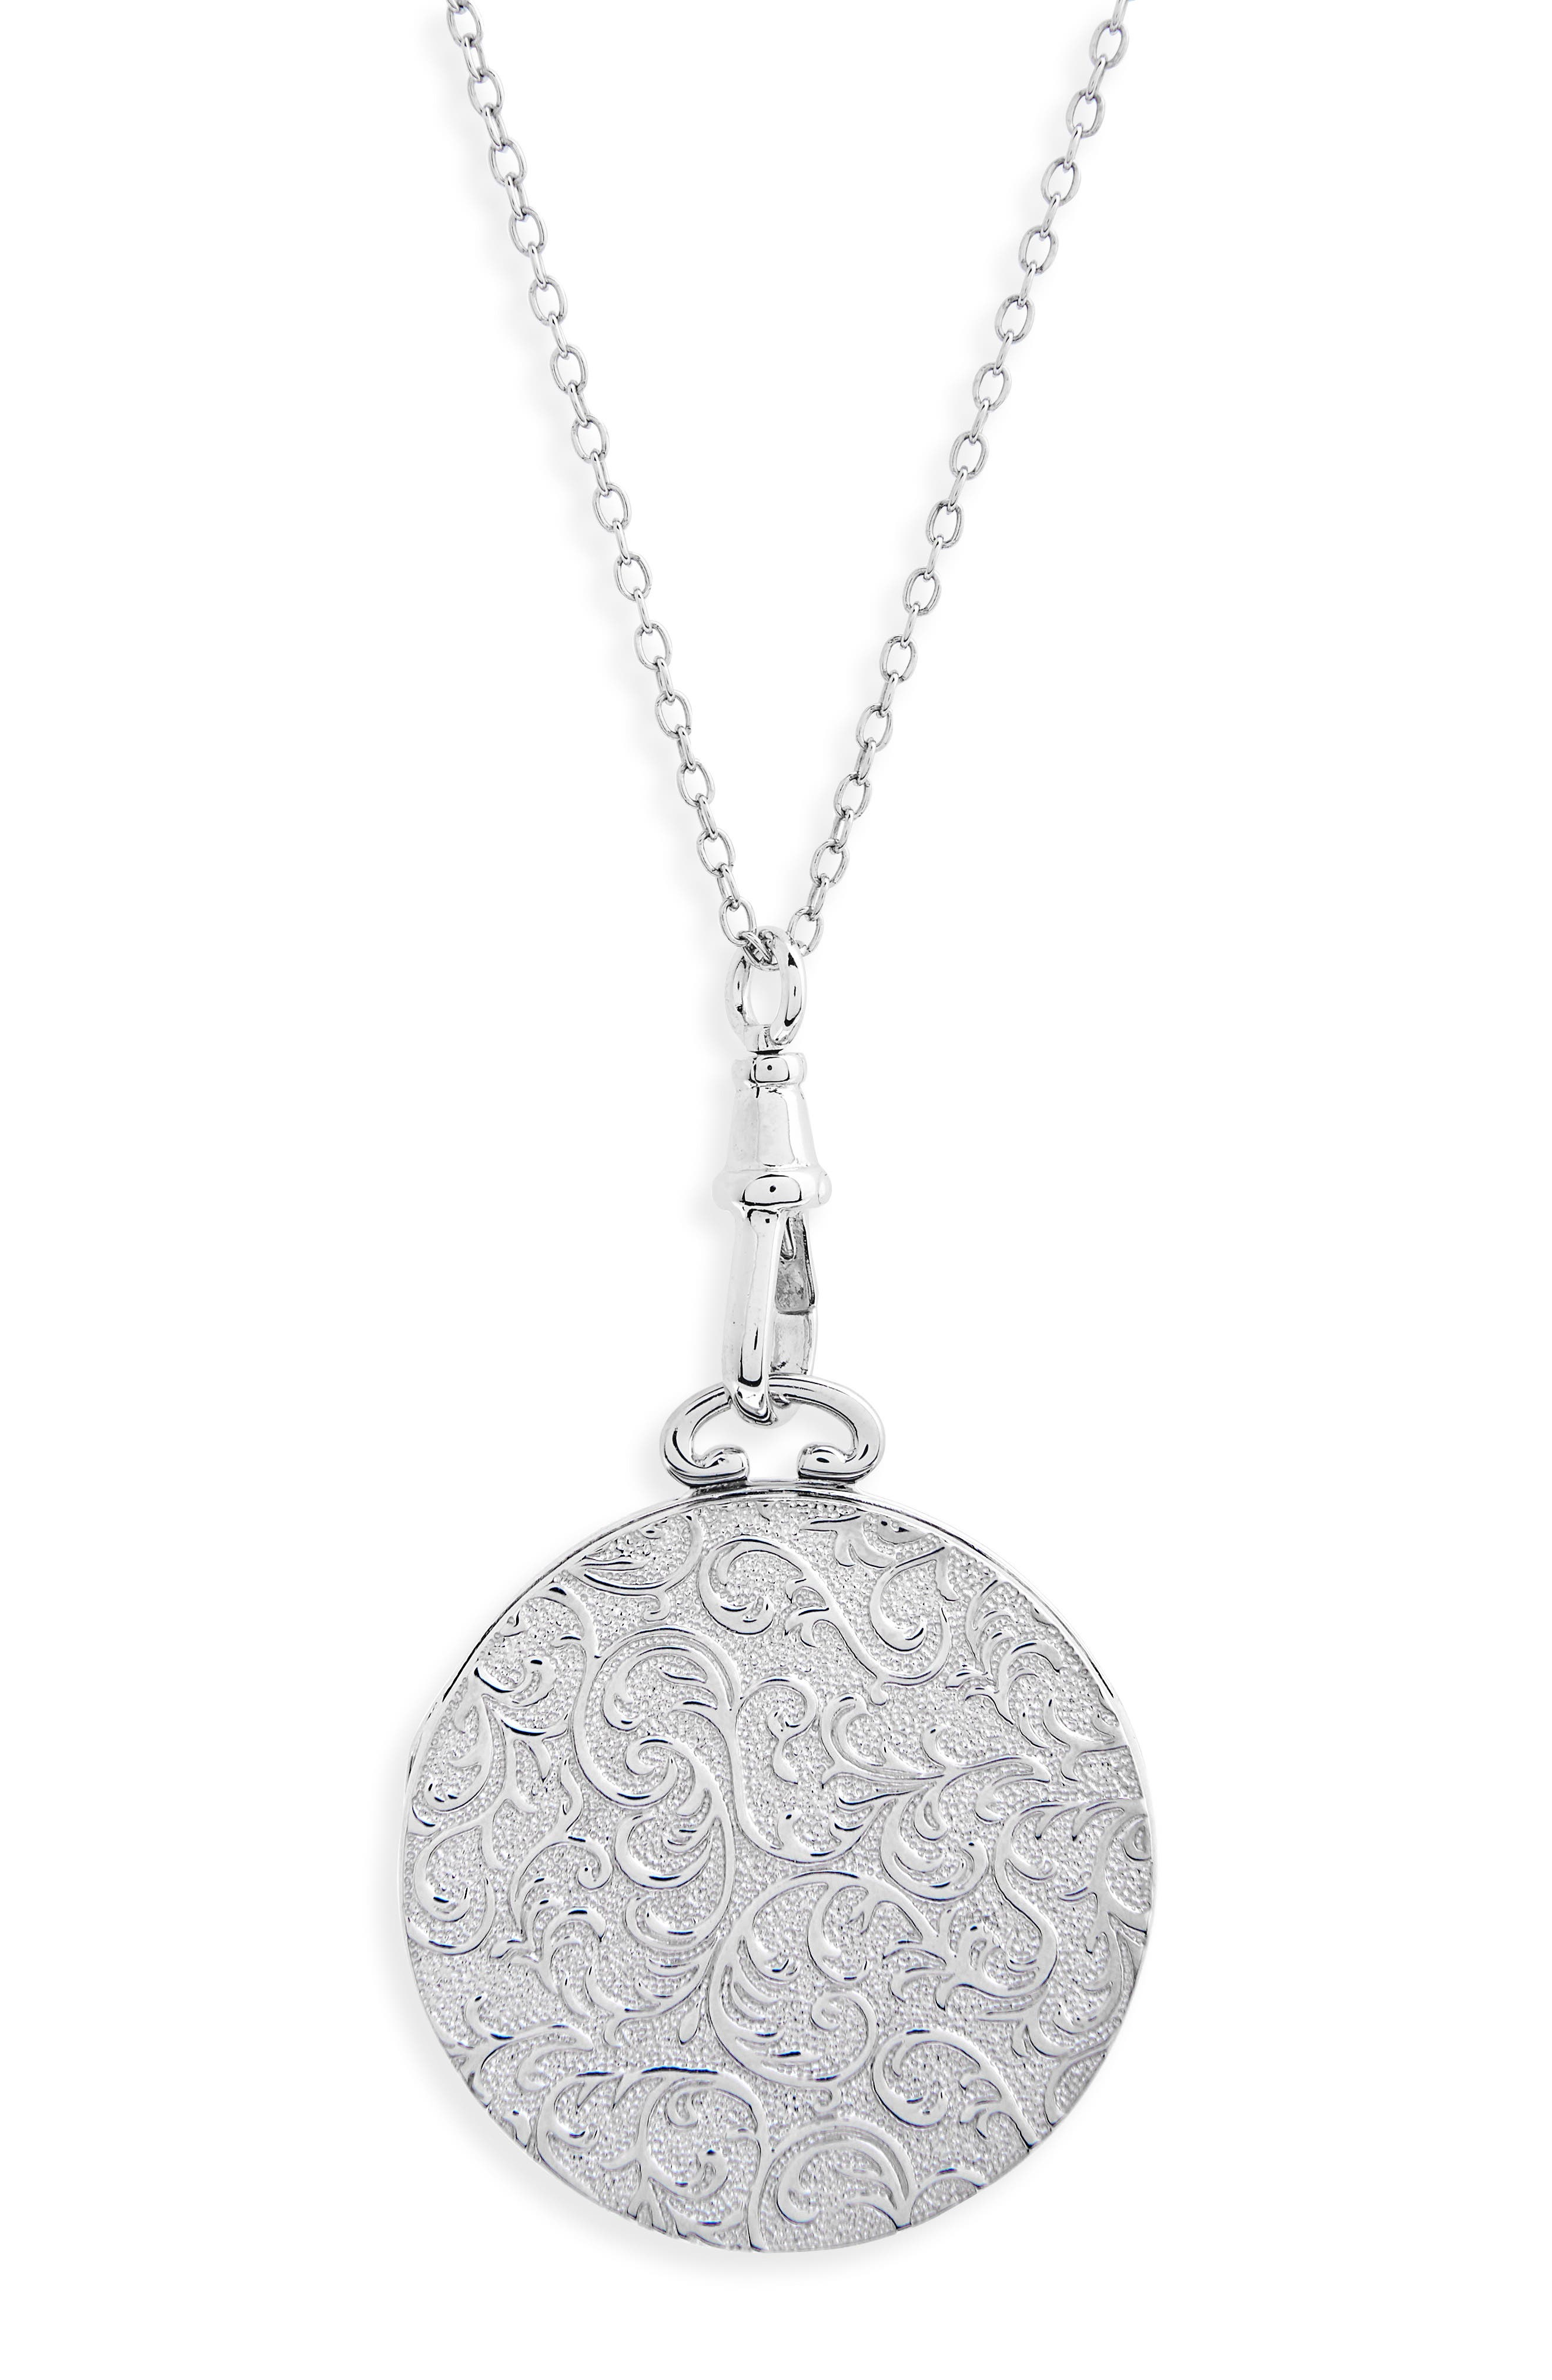 Swirling Vine Round Locket Necklace,                             Alternate thumbnail 2, color,                             STERLING SILVER